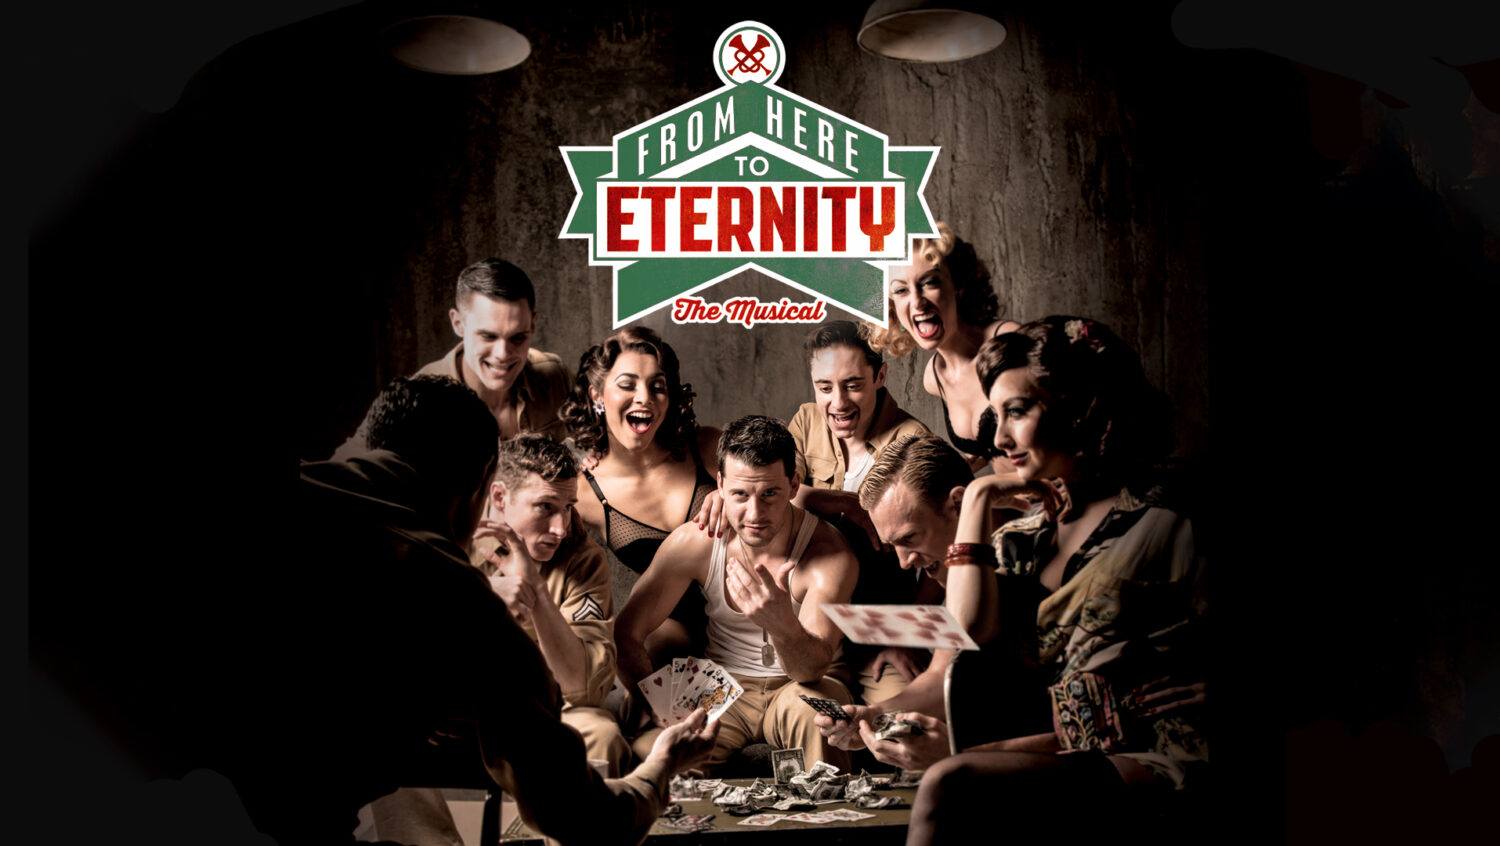 From Here to Eternity: The Musical - Stream now on Stage 2 View